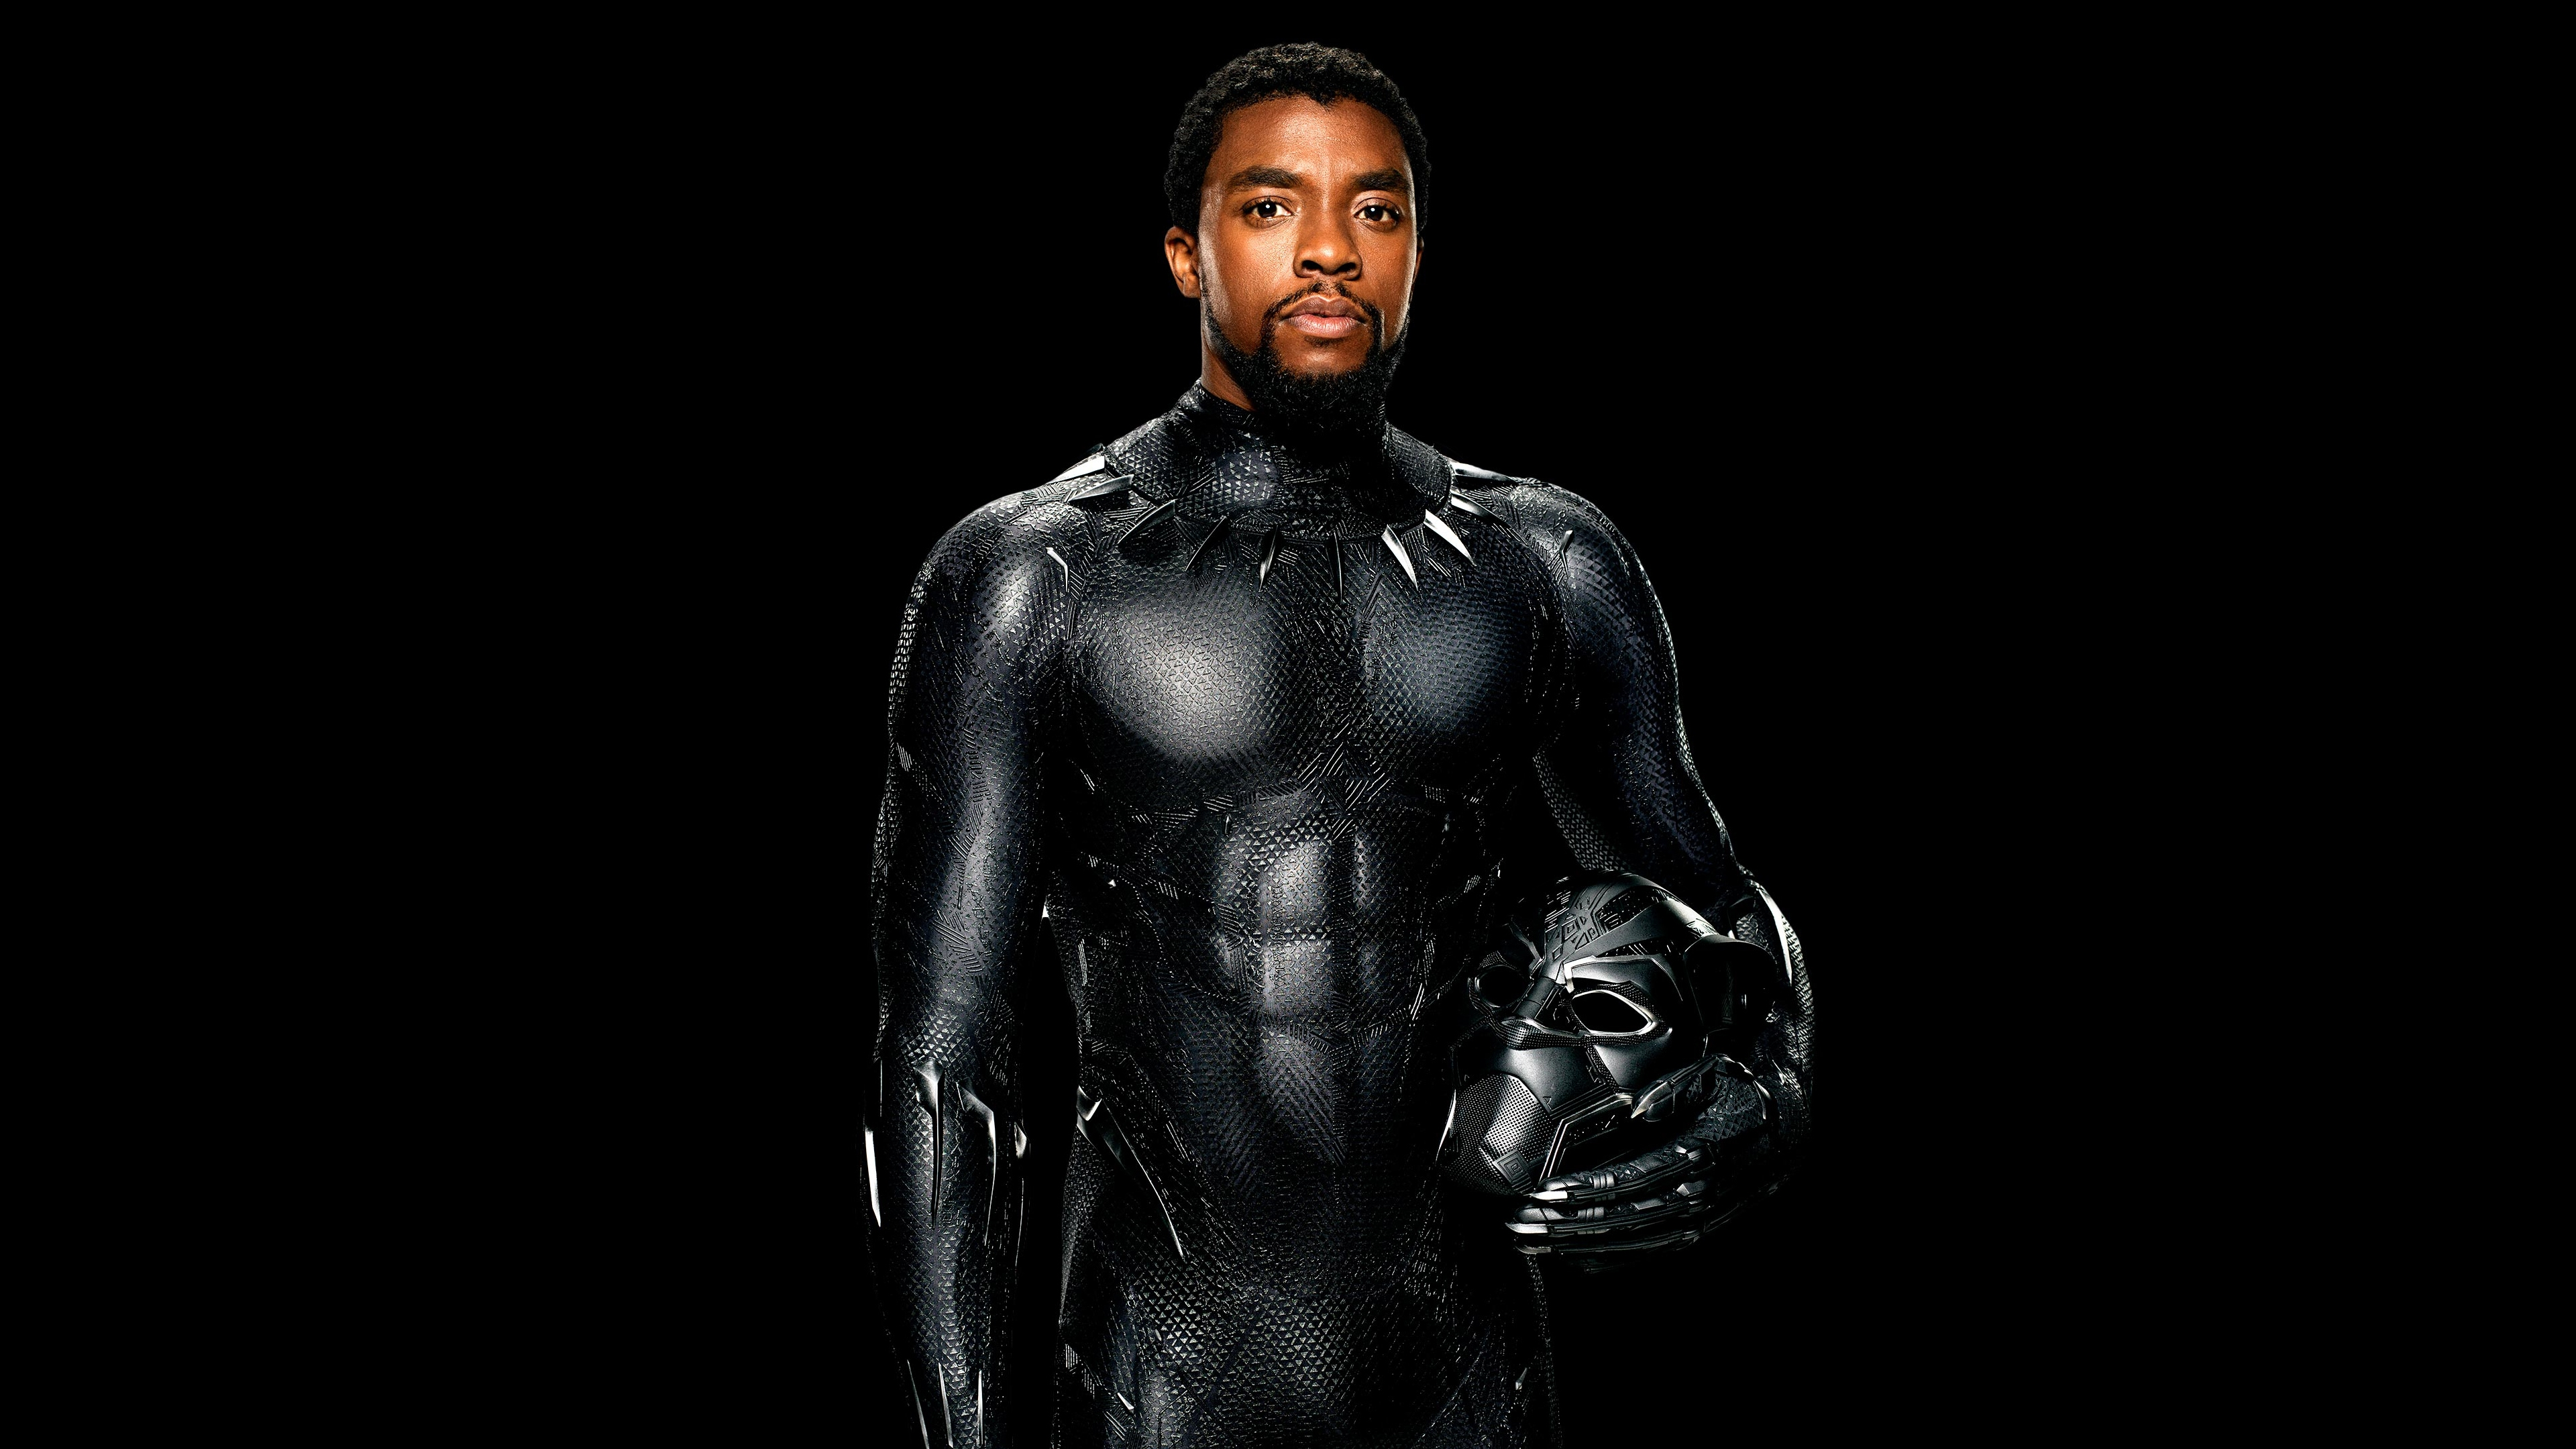 Chadwick Boseman Black Panther 4k Hd Movies 4k Wallpapers Images Backgrounds Photos And Pictures